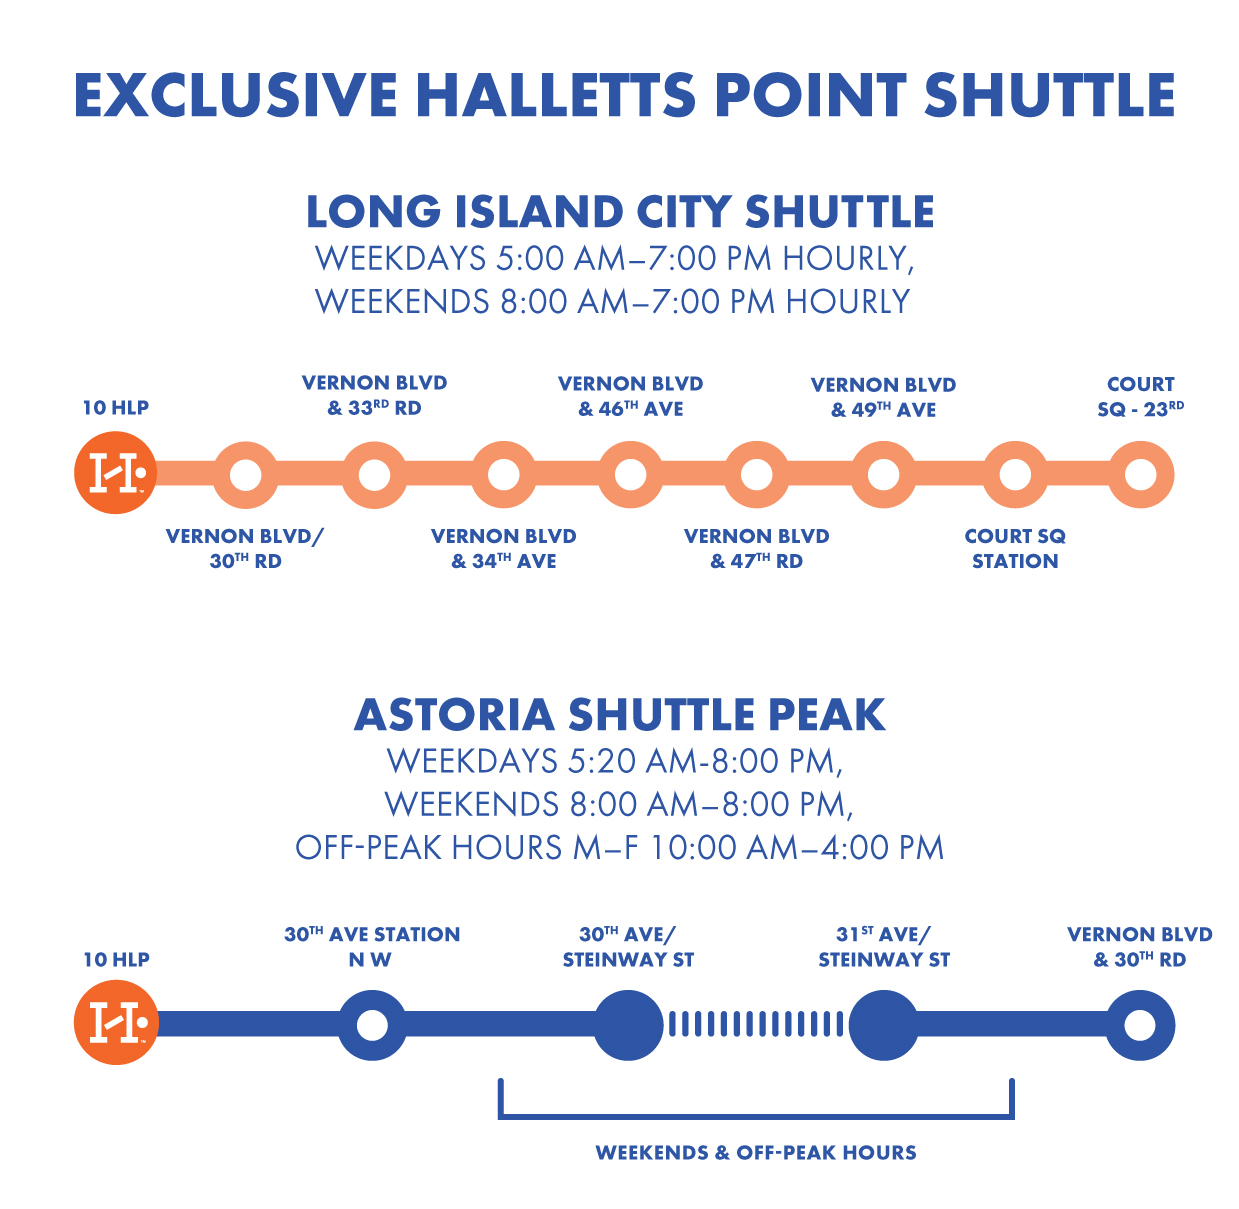 Long Island Shuttle Map Key